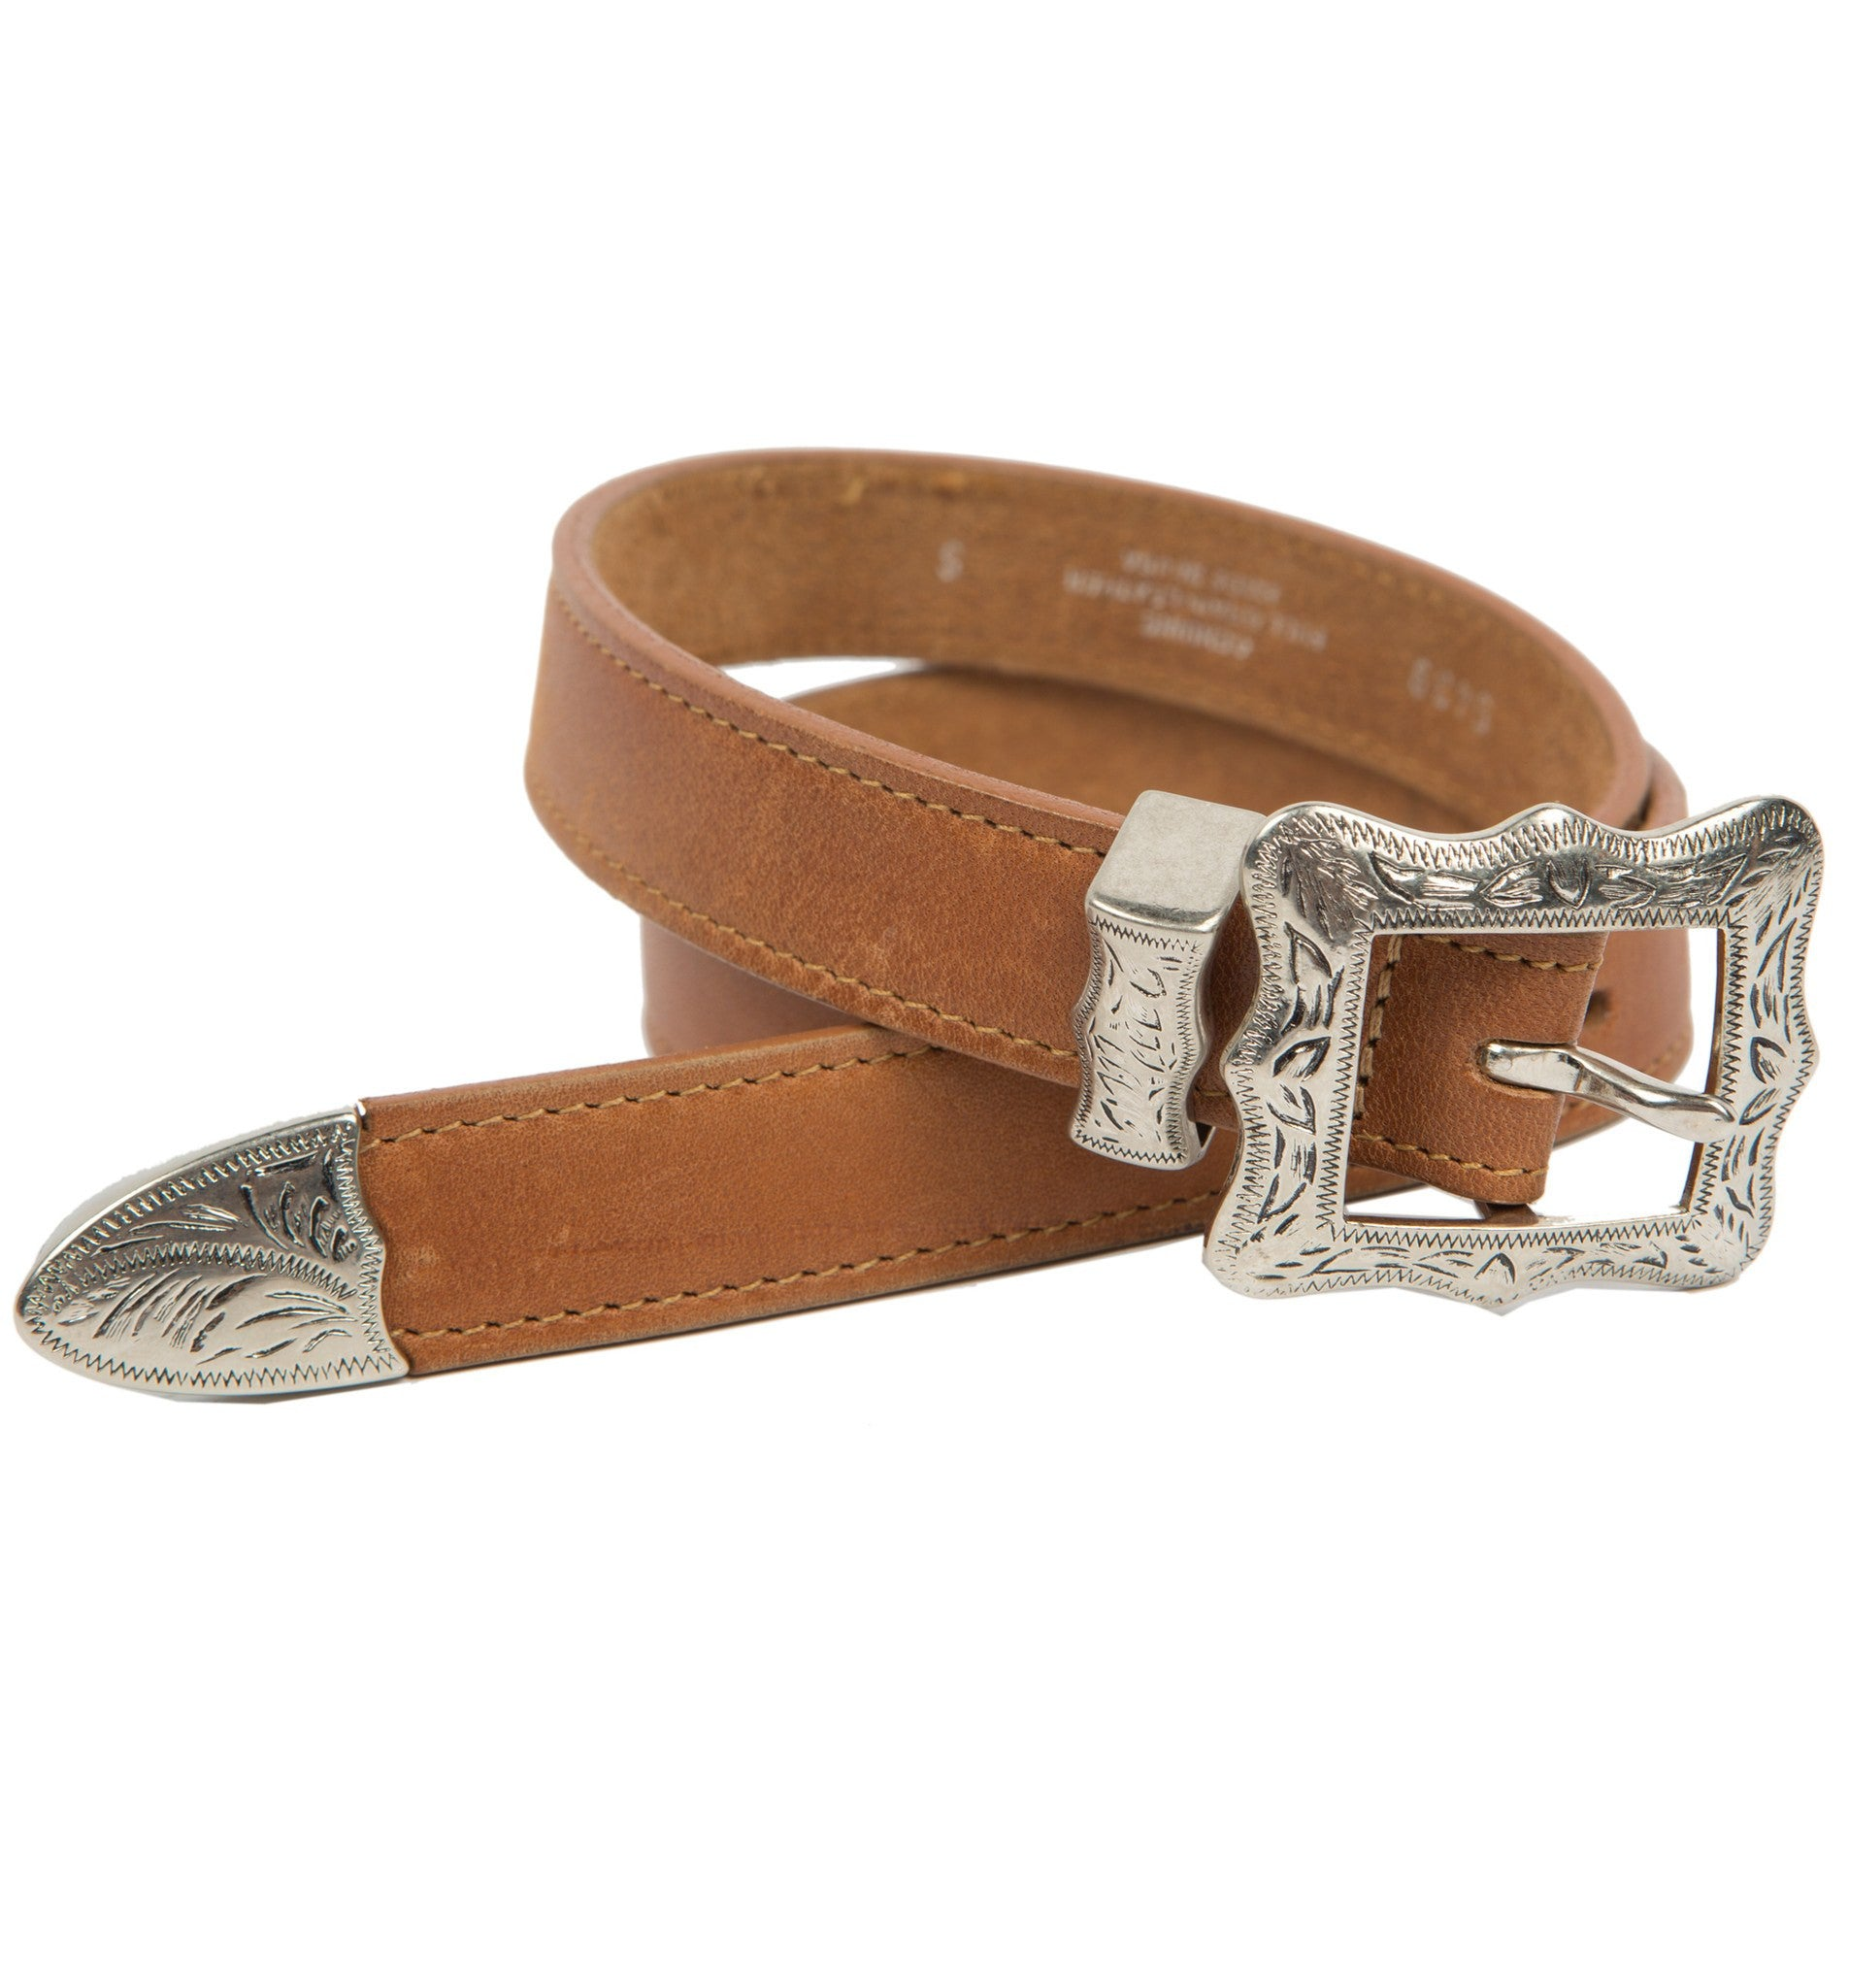 Vintage Brown Thin Toby Leather Belt, Size 34 - Vintage: Women's: Apparel - Iron and Resin